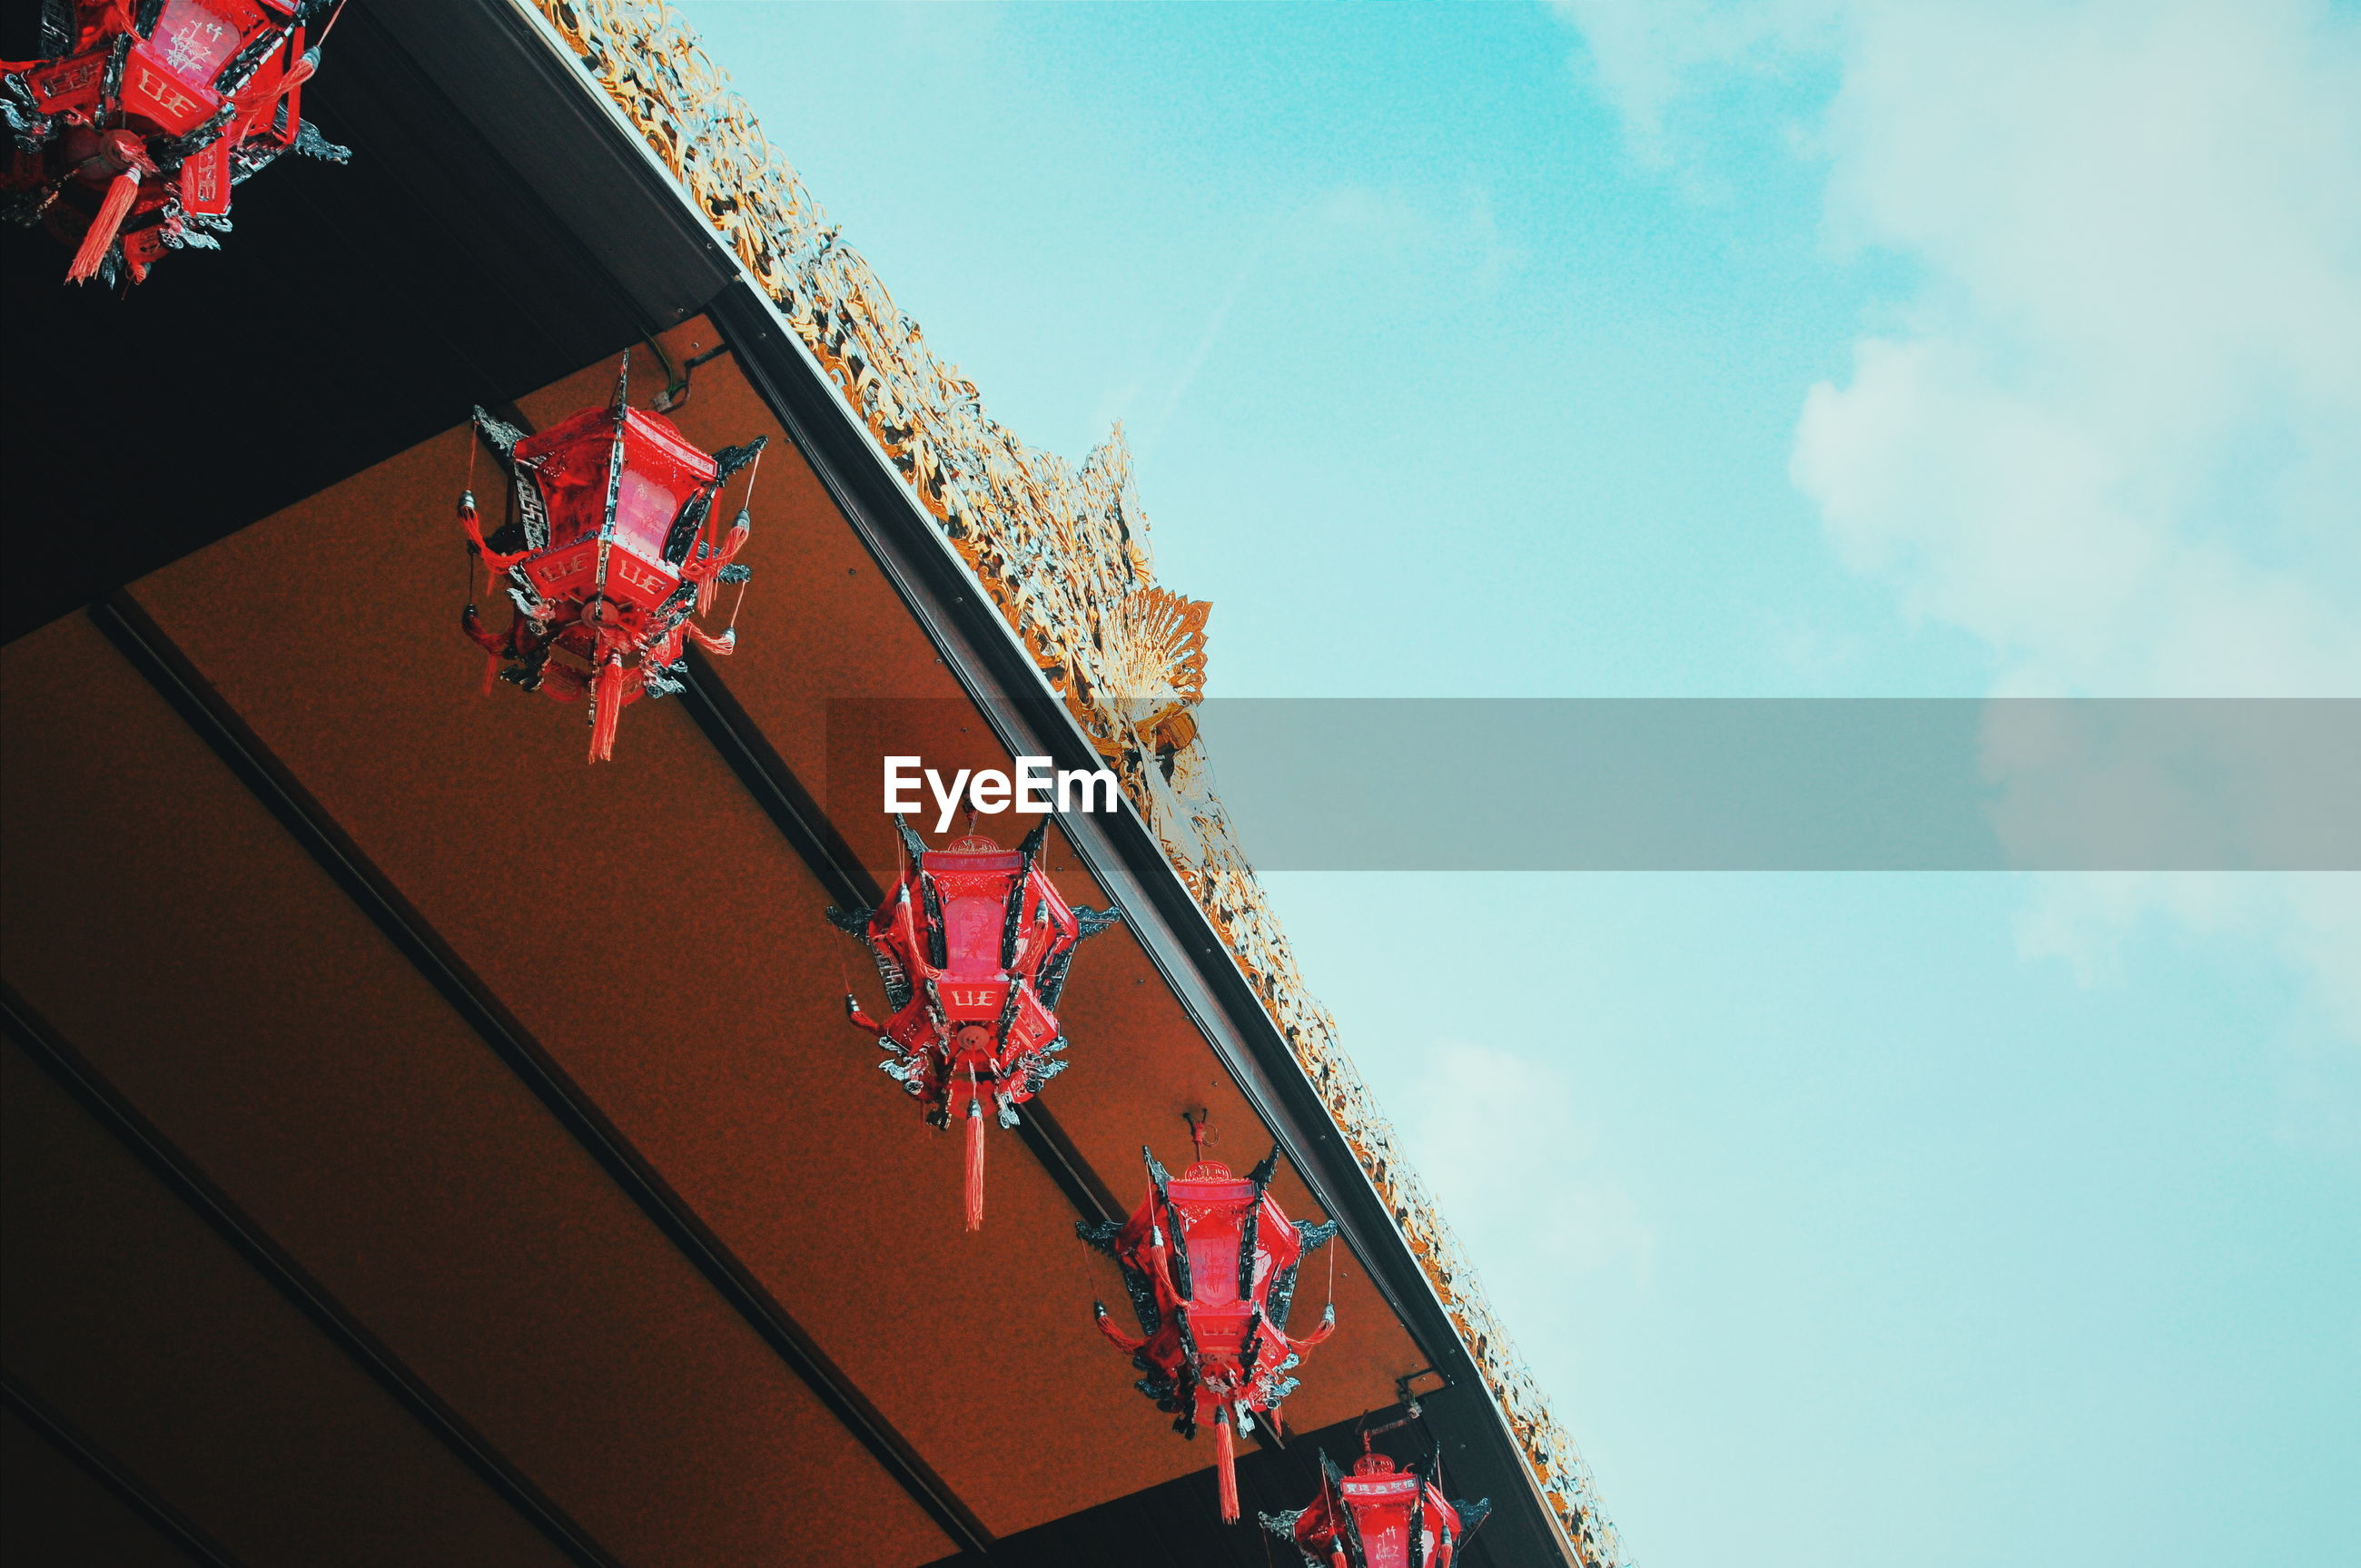 Low angle view of lanterns hanging over roof against sky